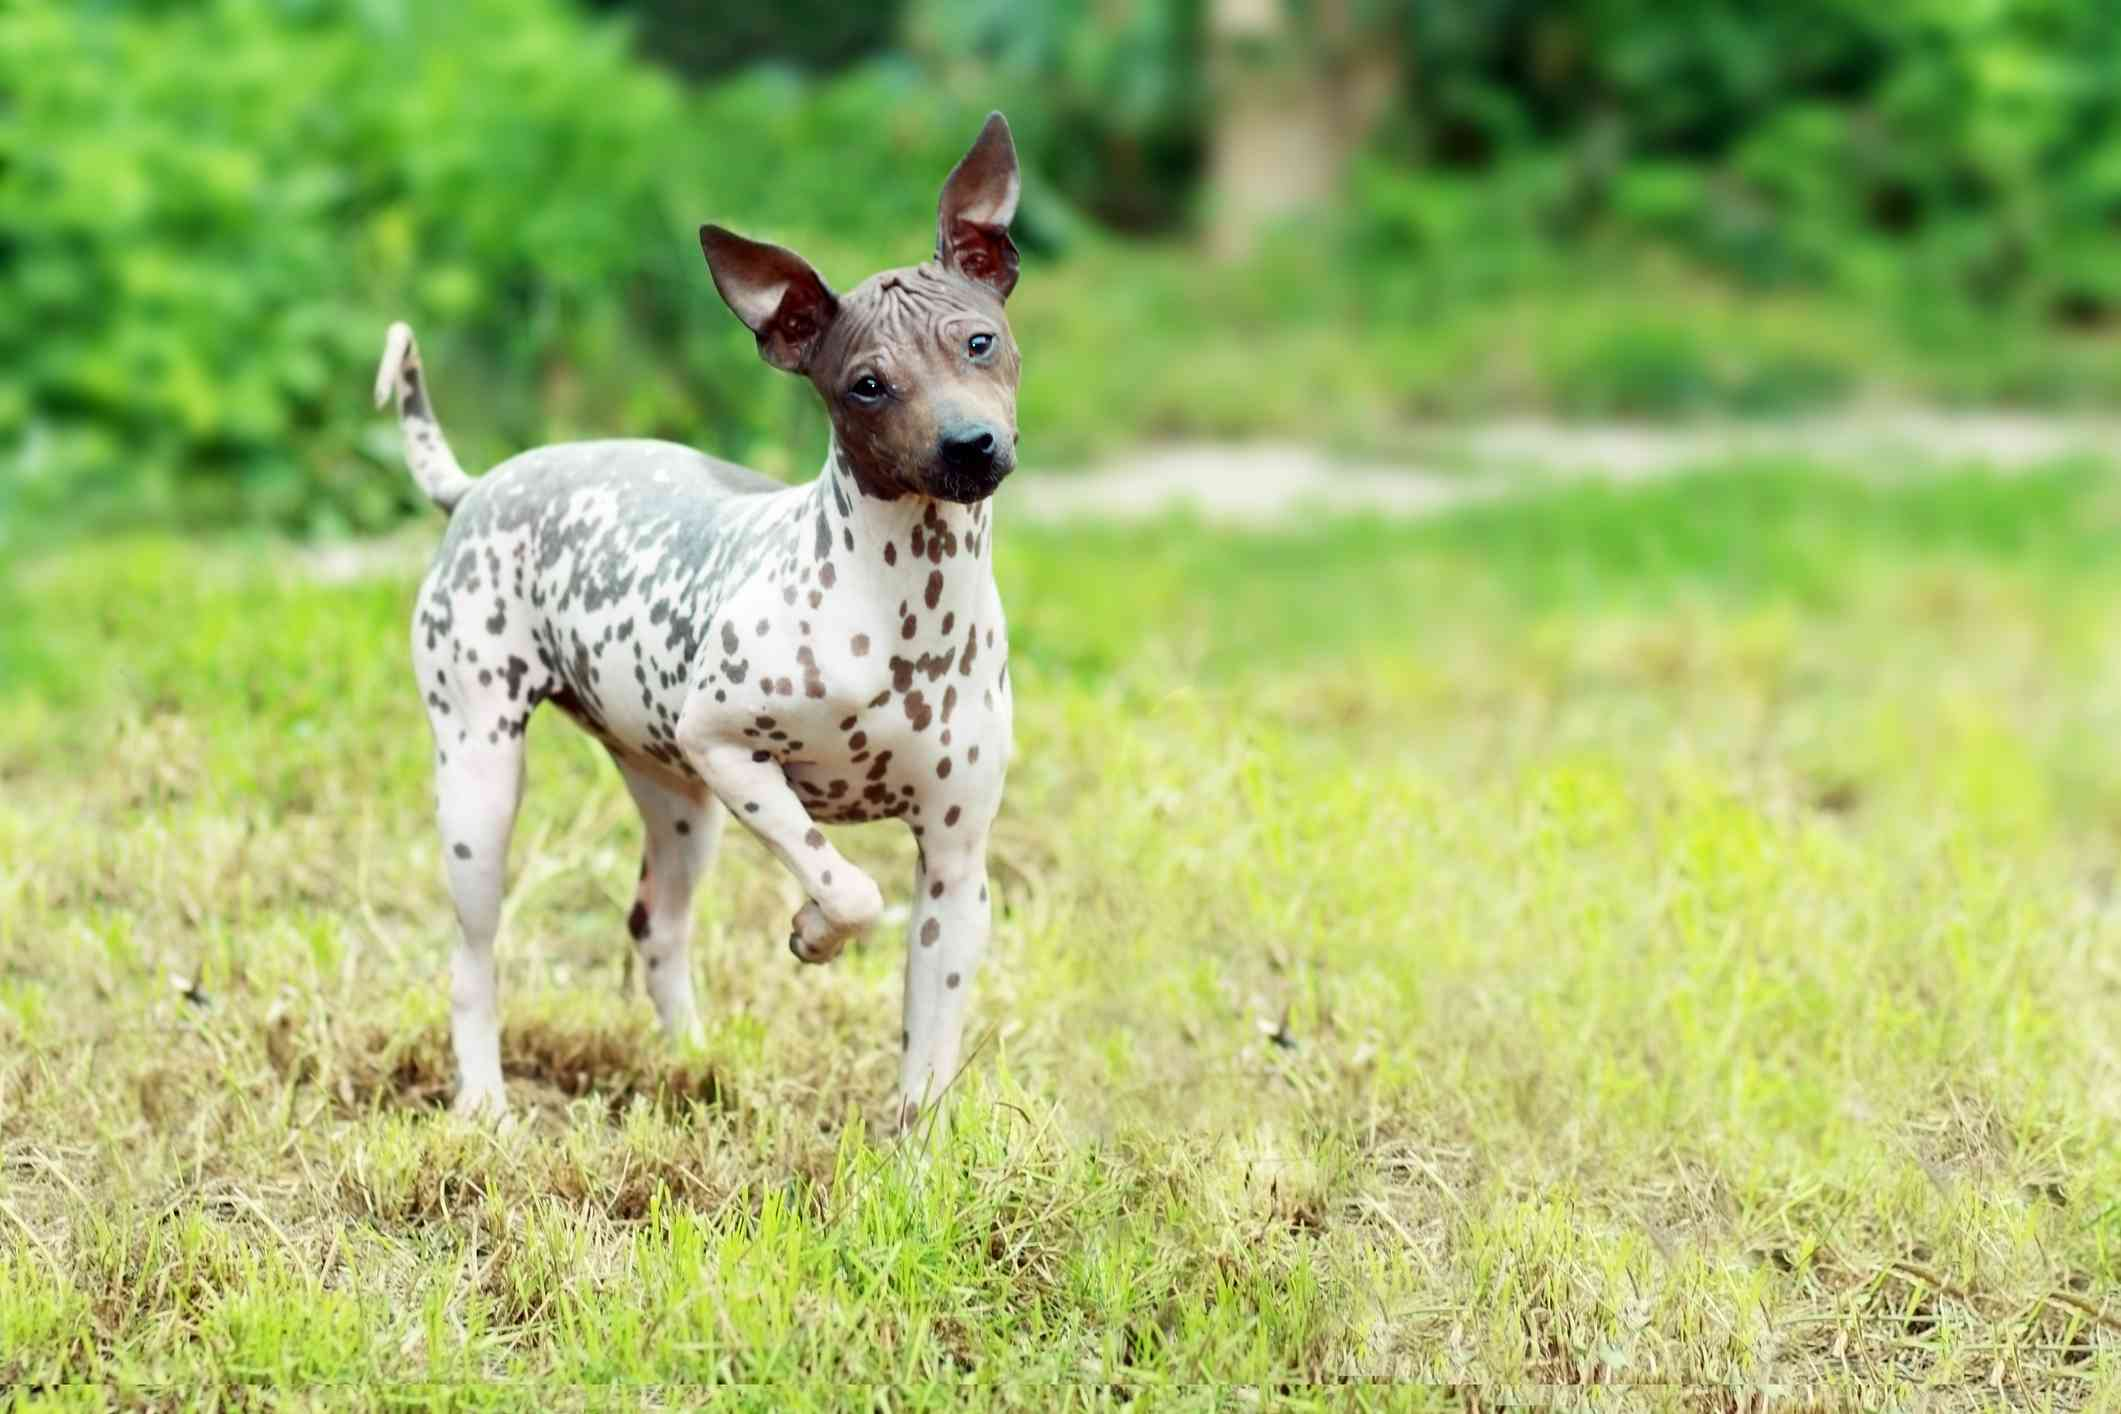 A hairless dog with a brown head and a brown and white spotted body prancing in the grass.